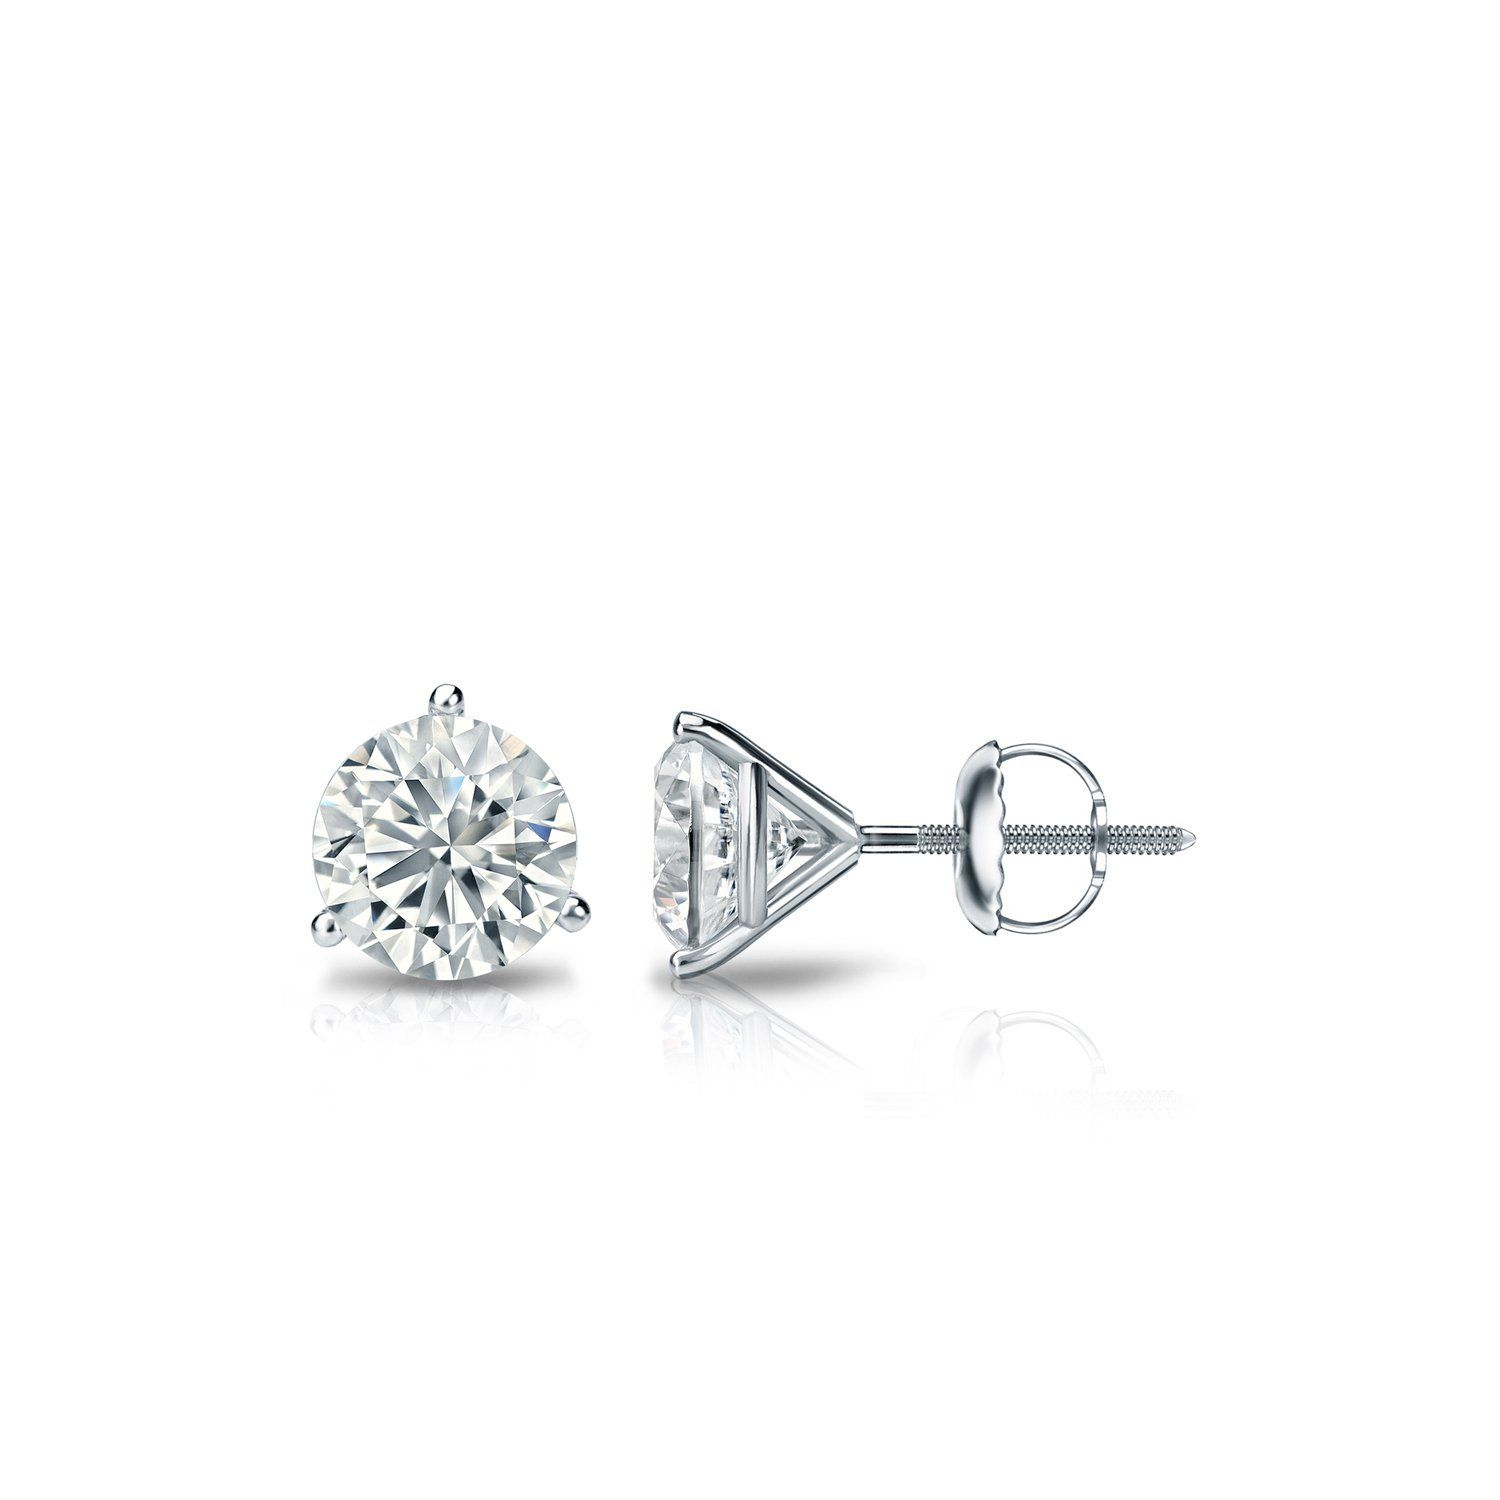 earrings free i ea si martini clarity overstock prong platinum today stud color round product diamond h watches tdw jewelry shipping